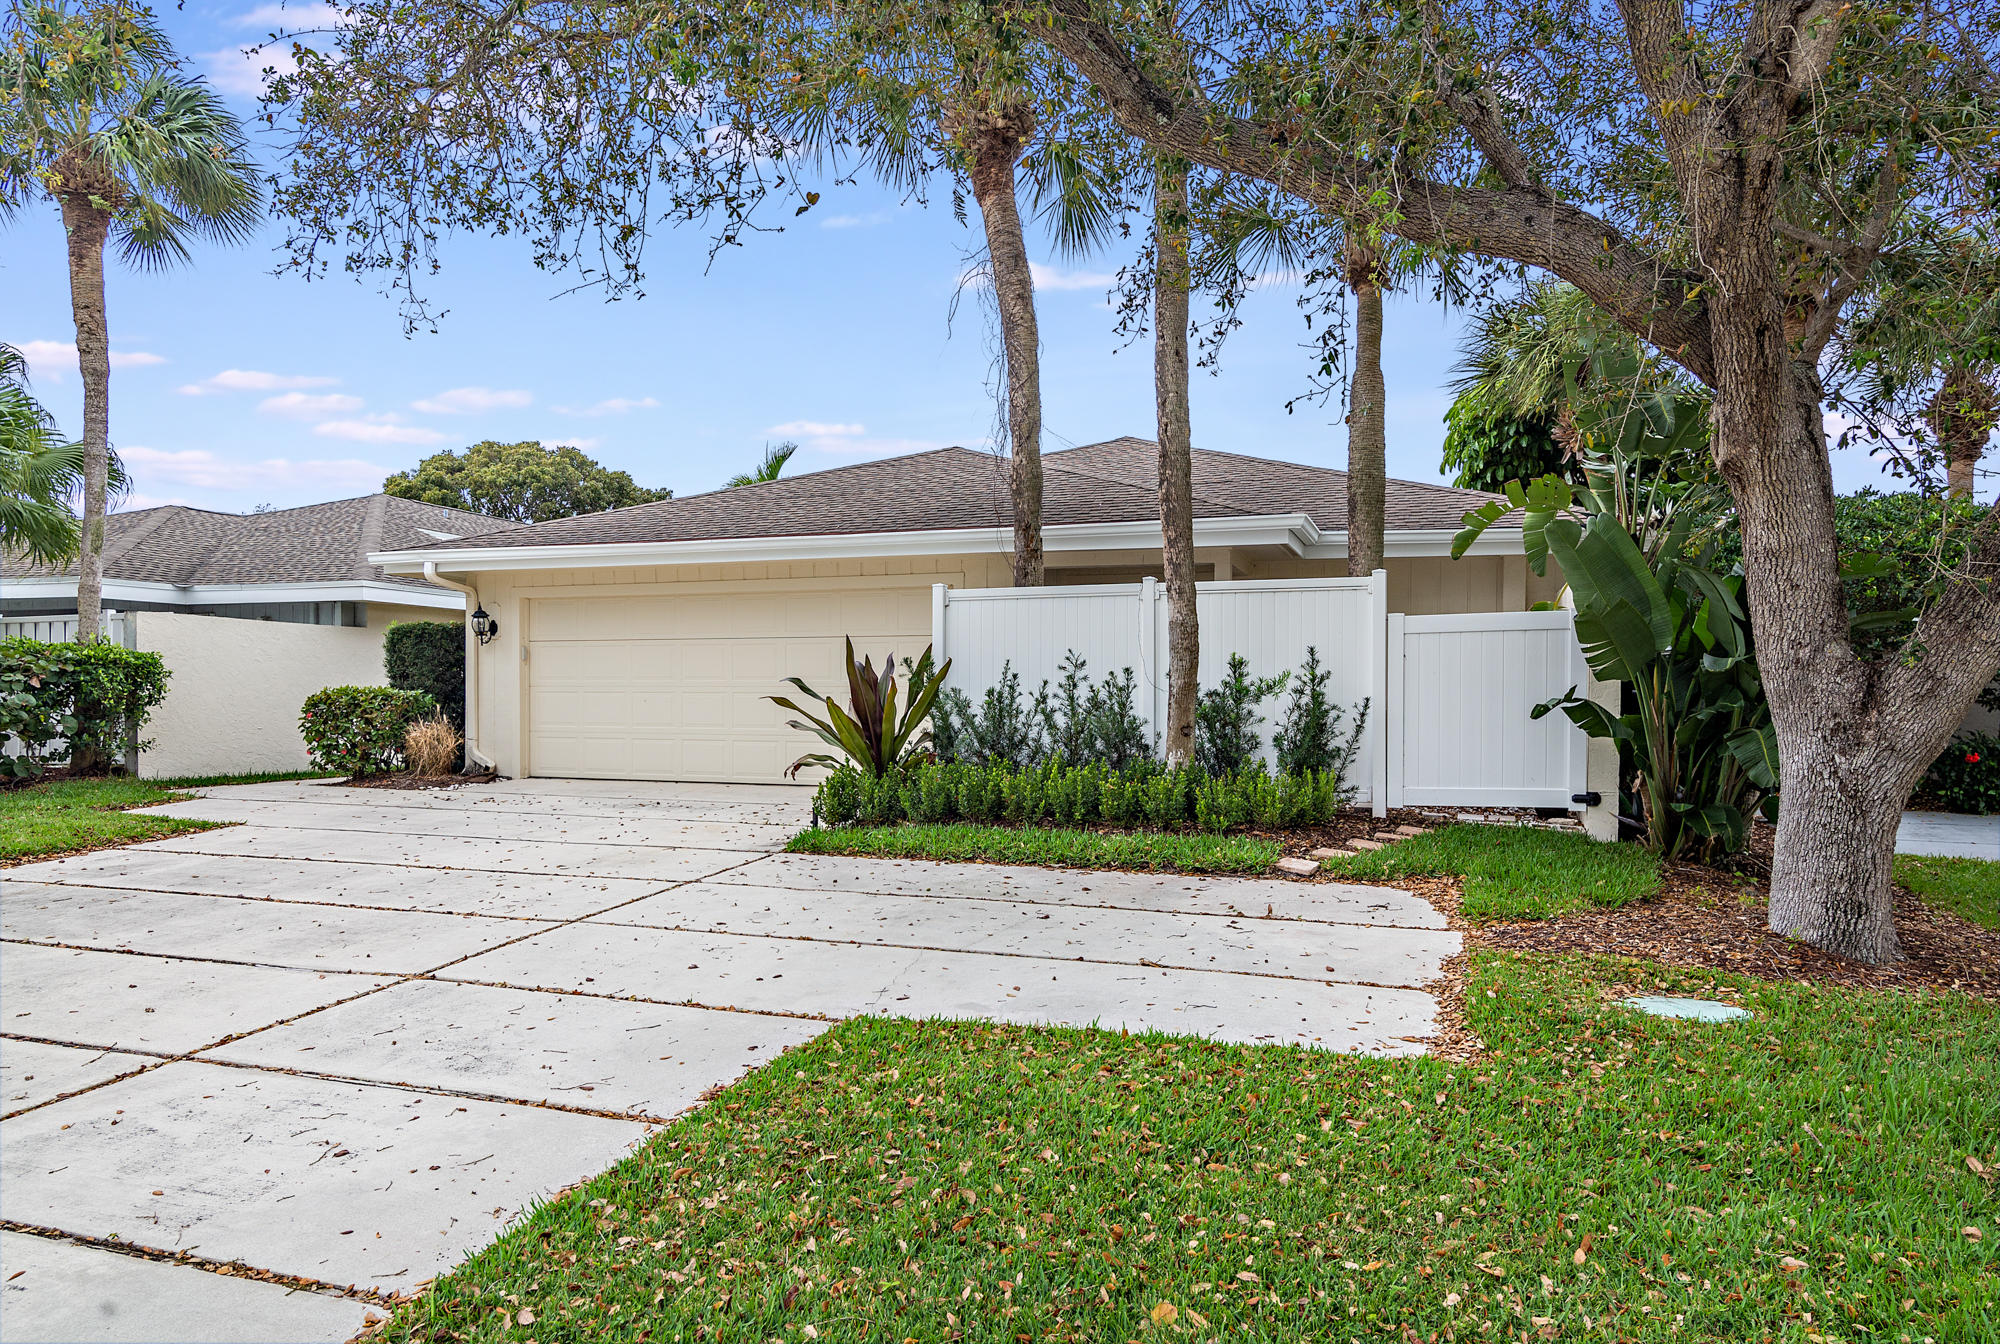 17105 Bay Street, Jupiter, Florida 33477, 3 Bedrooms Bedrooms, ,2 BathroomsBathrooms,F,Single family,Bay,RX-10613411